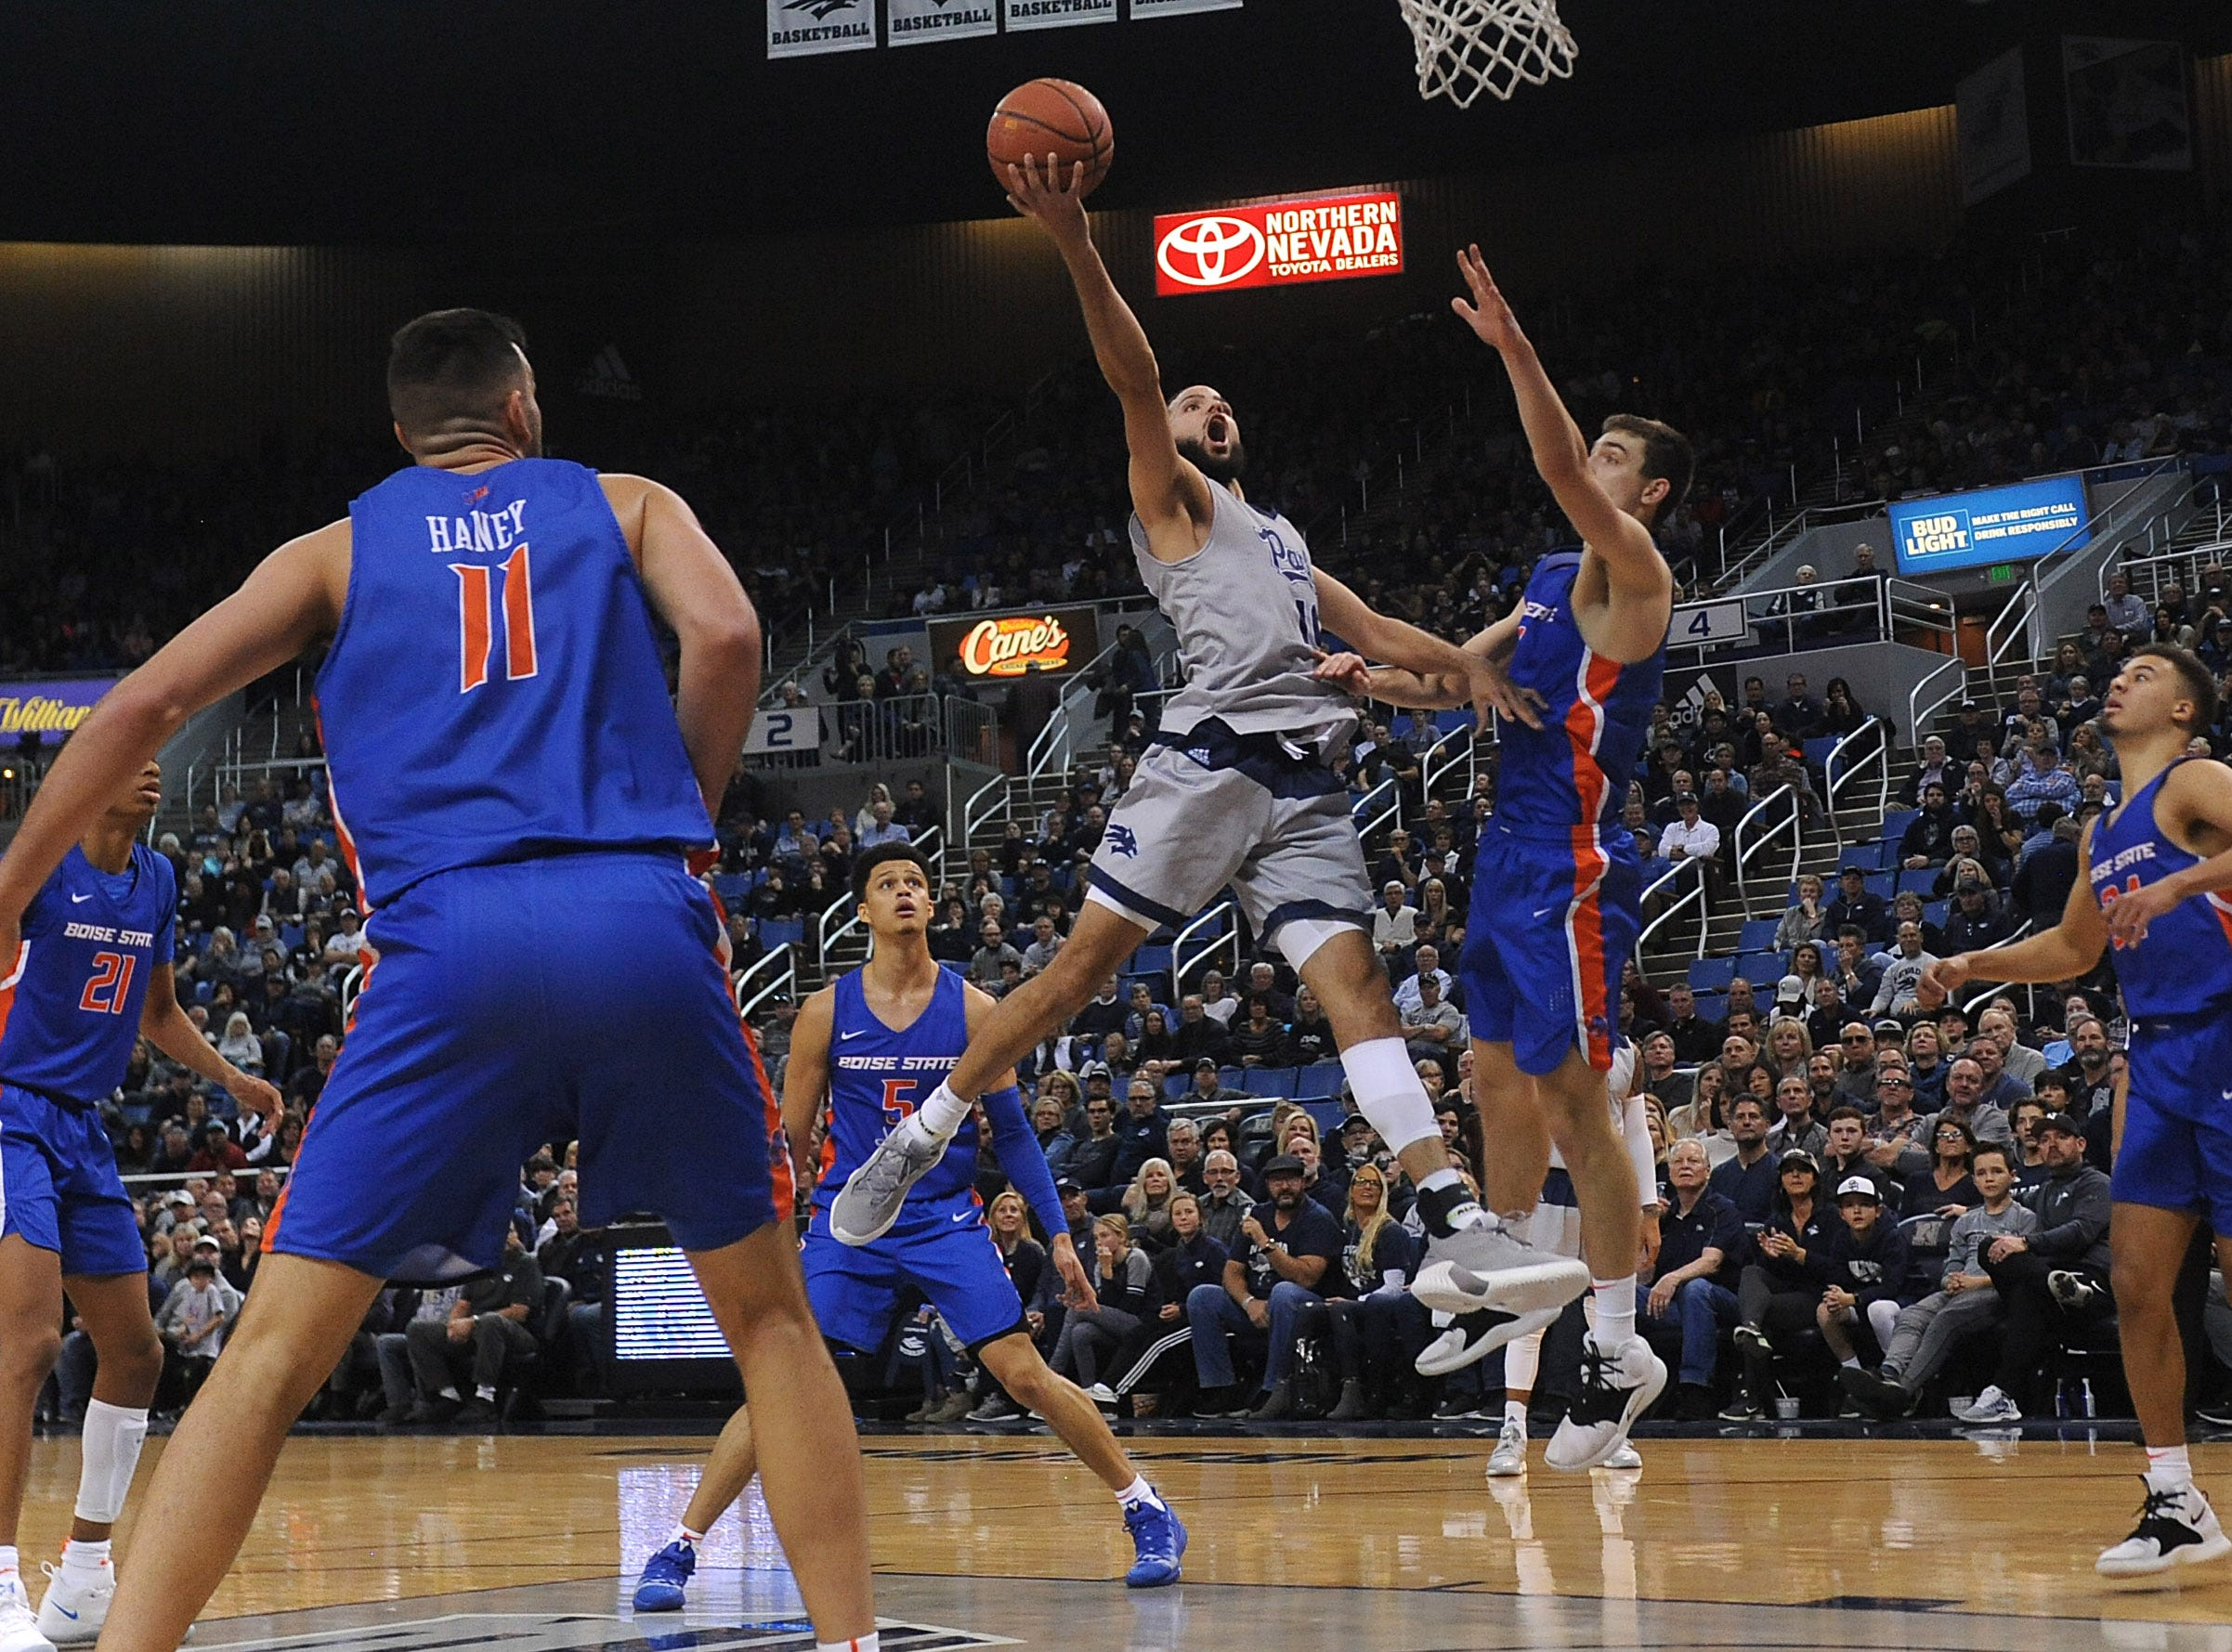 Nevada's Caleb Martin (10) drives to the basket while taking on Boise St. during their basketball game at Lawlor Events Center in Reno on Feb. 2, 2019.